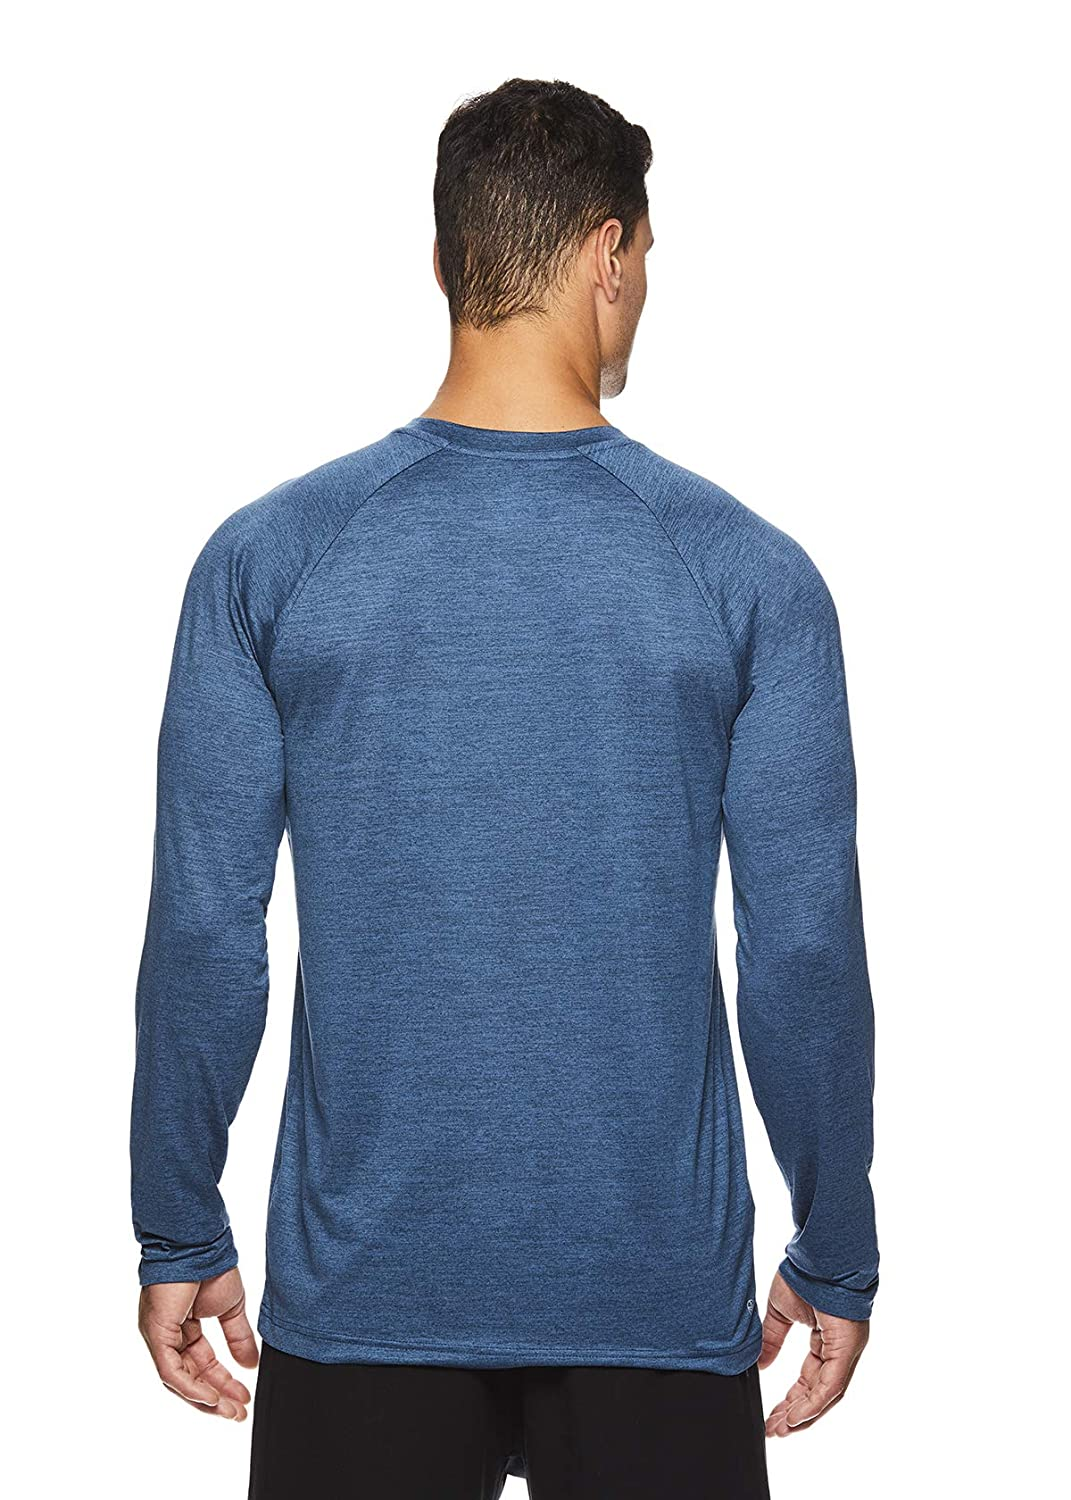 163ffeda2621 Amazon.com: Gaiam Men's Long Sleeve Relaxed Fit T Shirt - Yoga & Workout  Activewear Top: Clothing